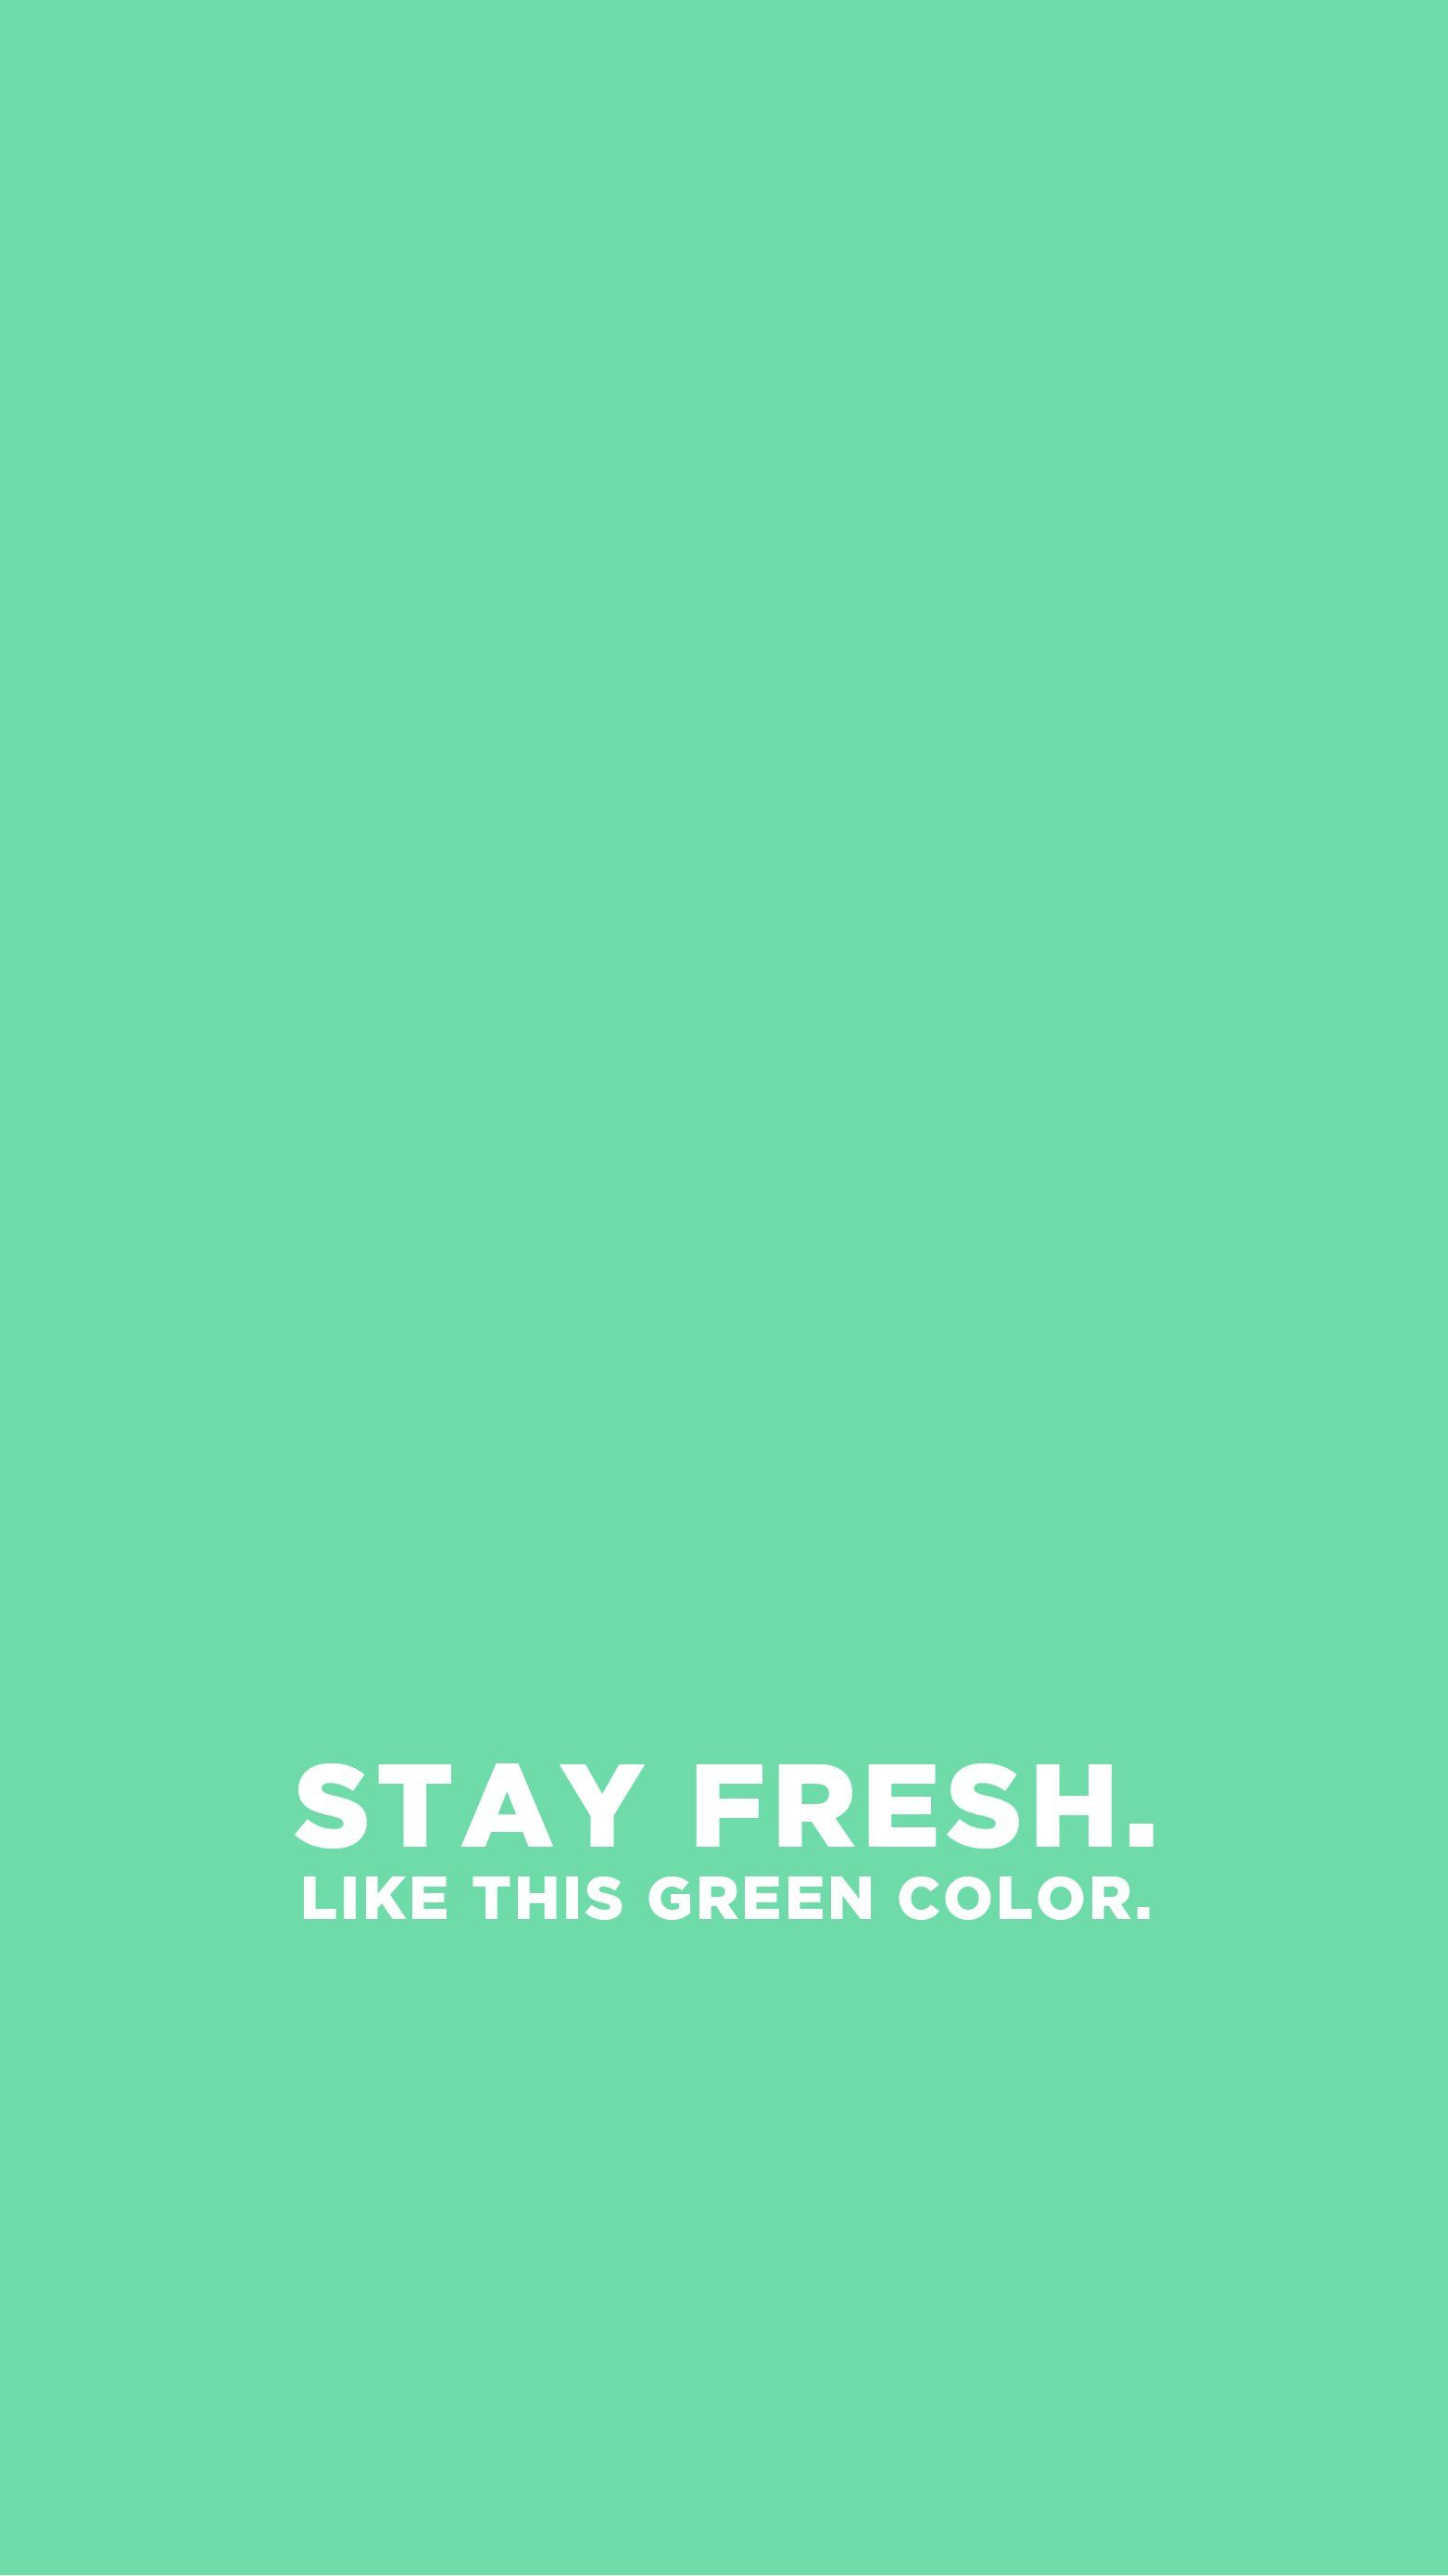 Pin By Arvo On Wallpapers Mint Green Wallpaper Mint Green Aesthetic Pastel Mint Get inspired for green wallpaper for